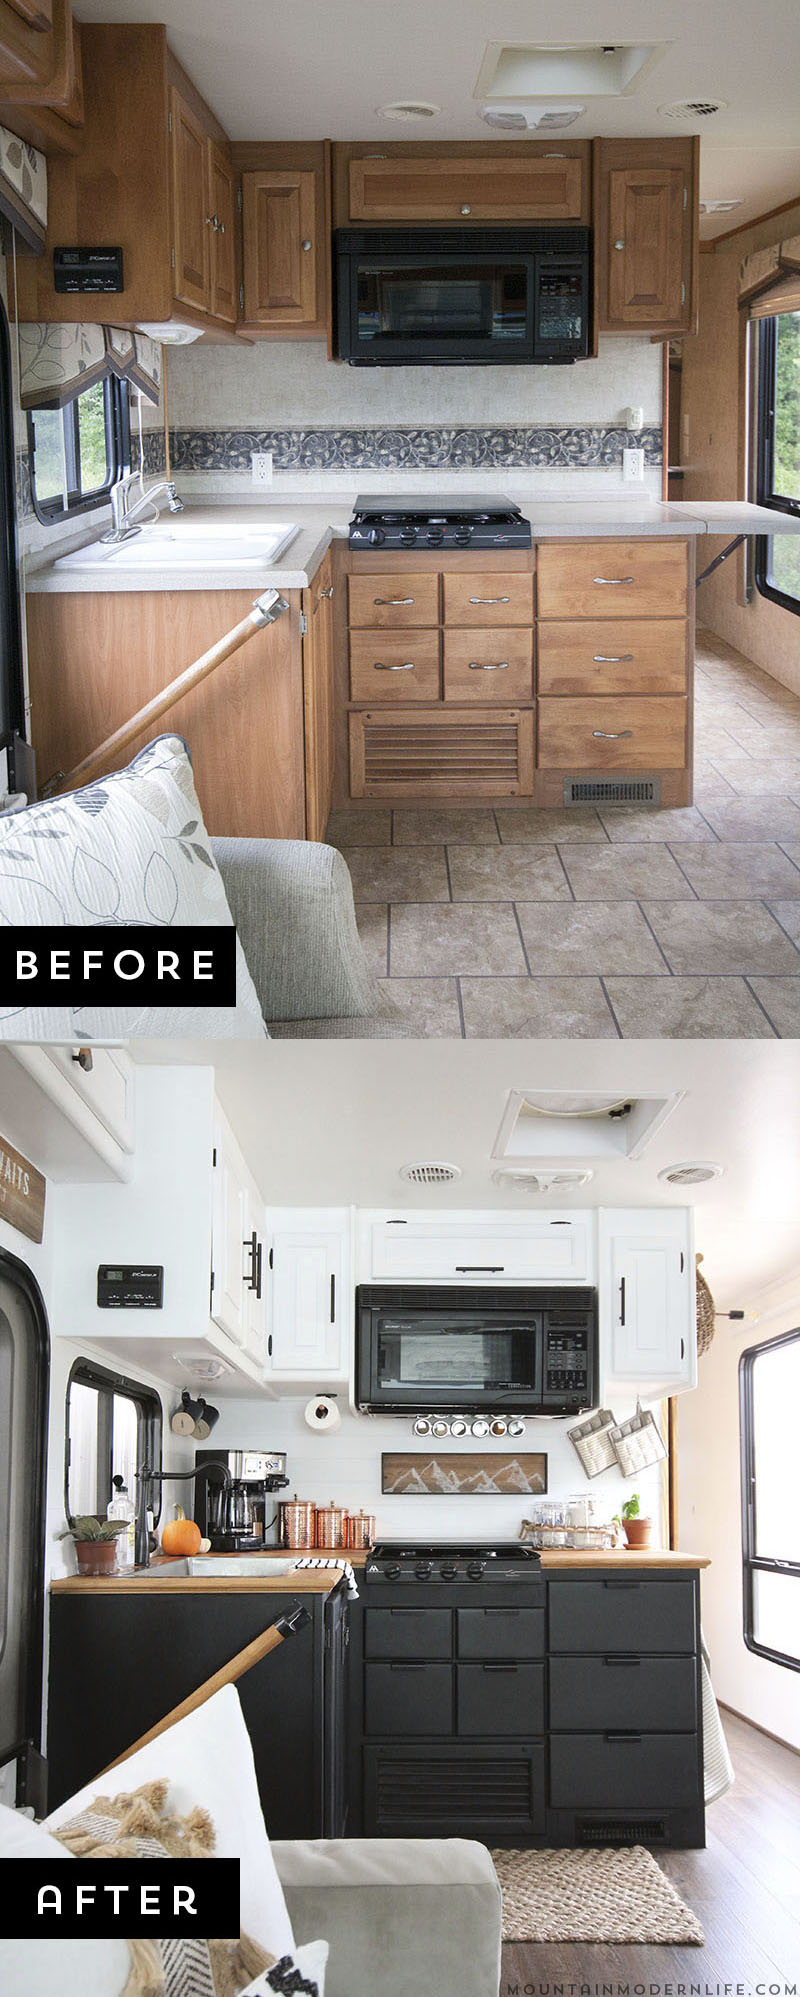 Camper Remodel Ideas 88 Decoratoo